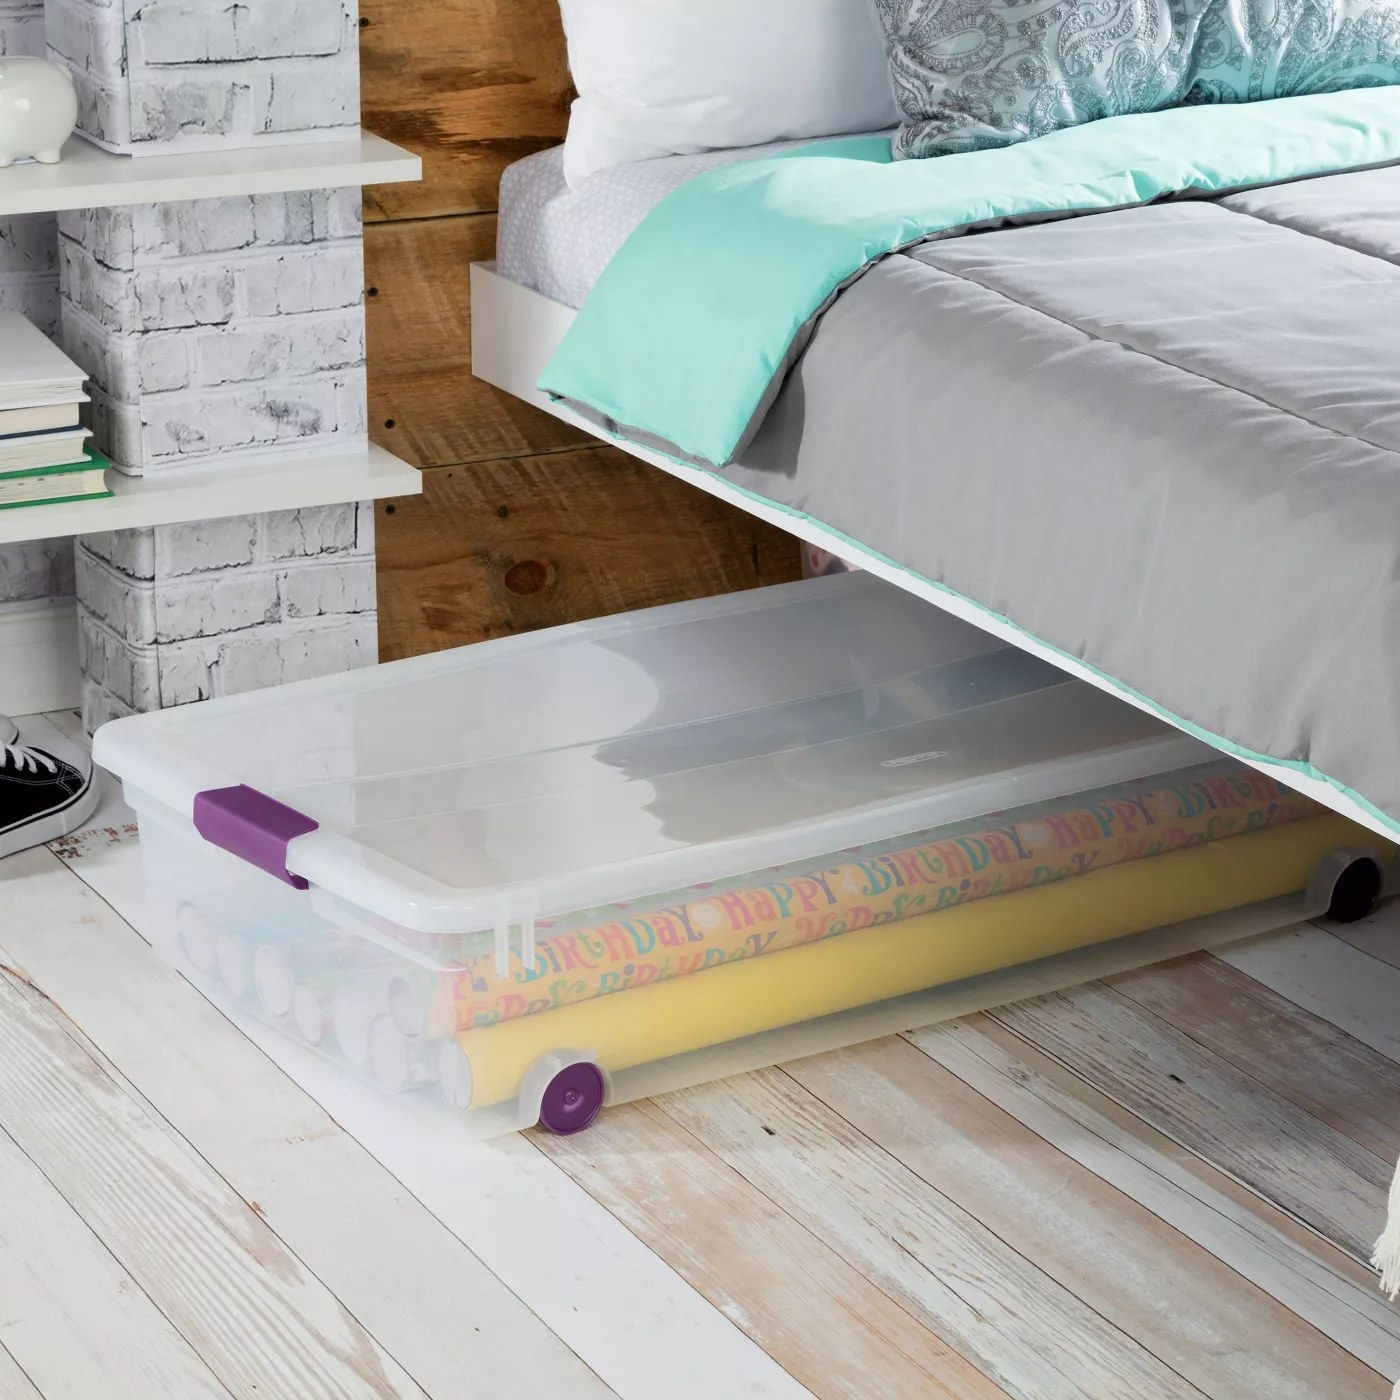 The clear storage baskets with latches and wheels